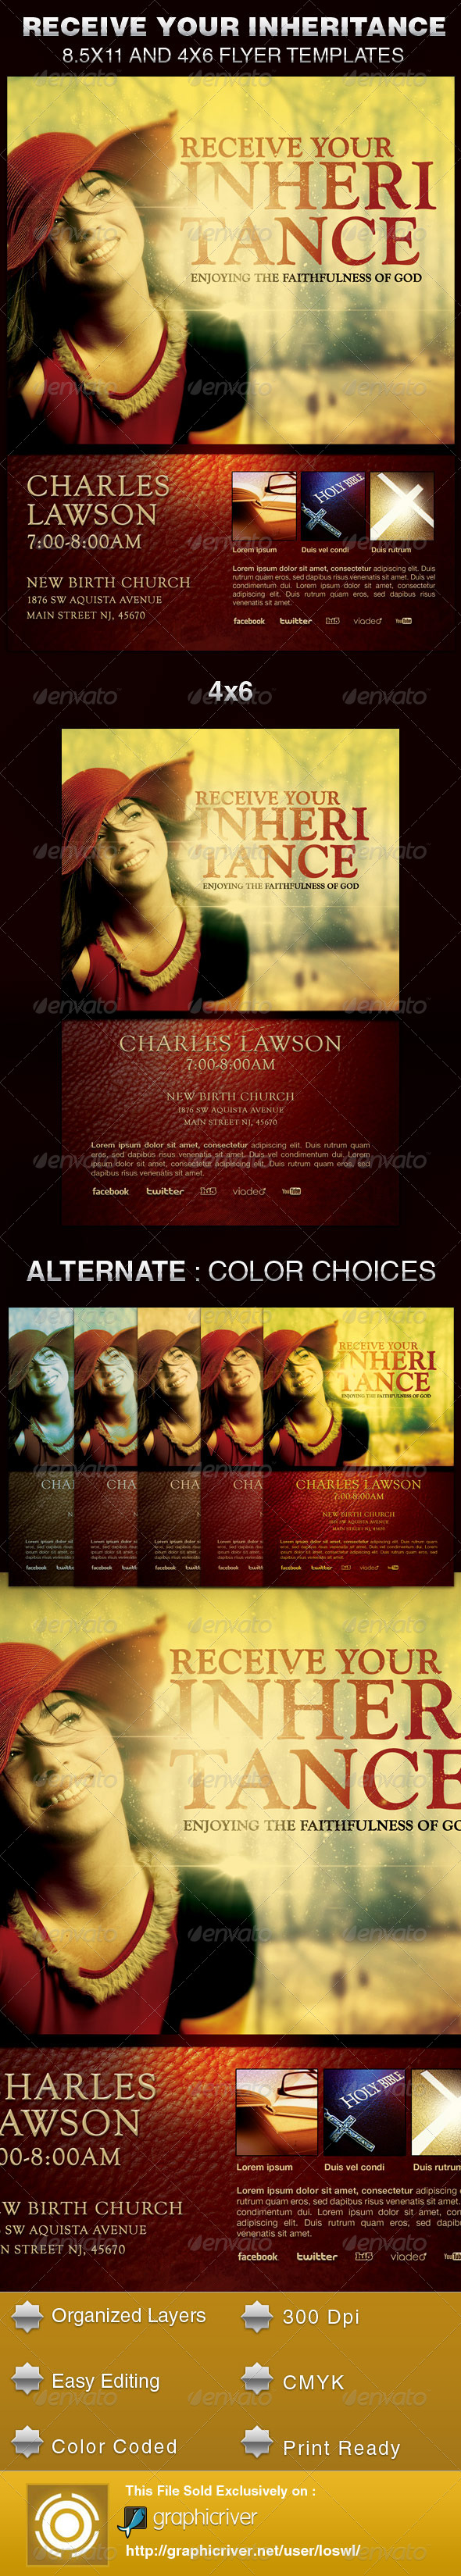 GraphicRiver Receive Your Inheritance Church Flyer Template 5633358